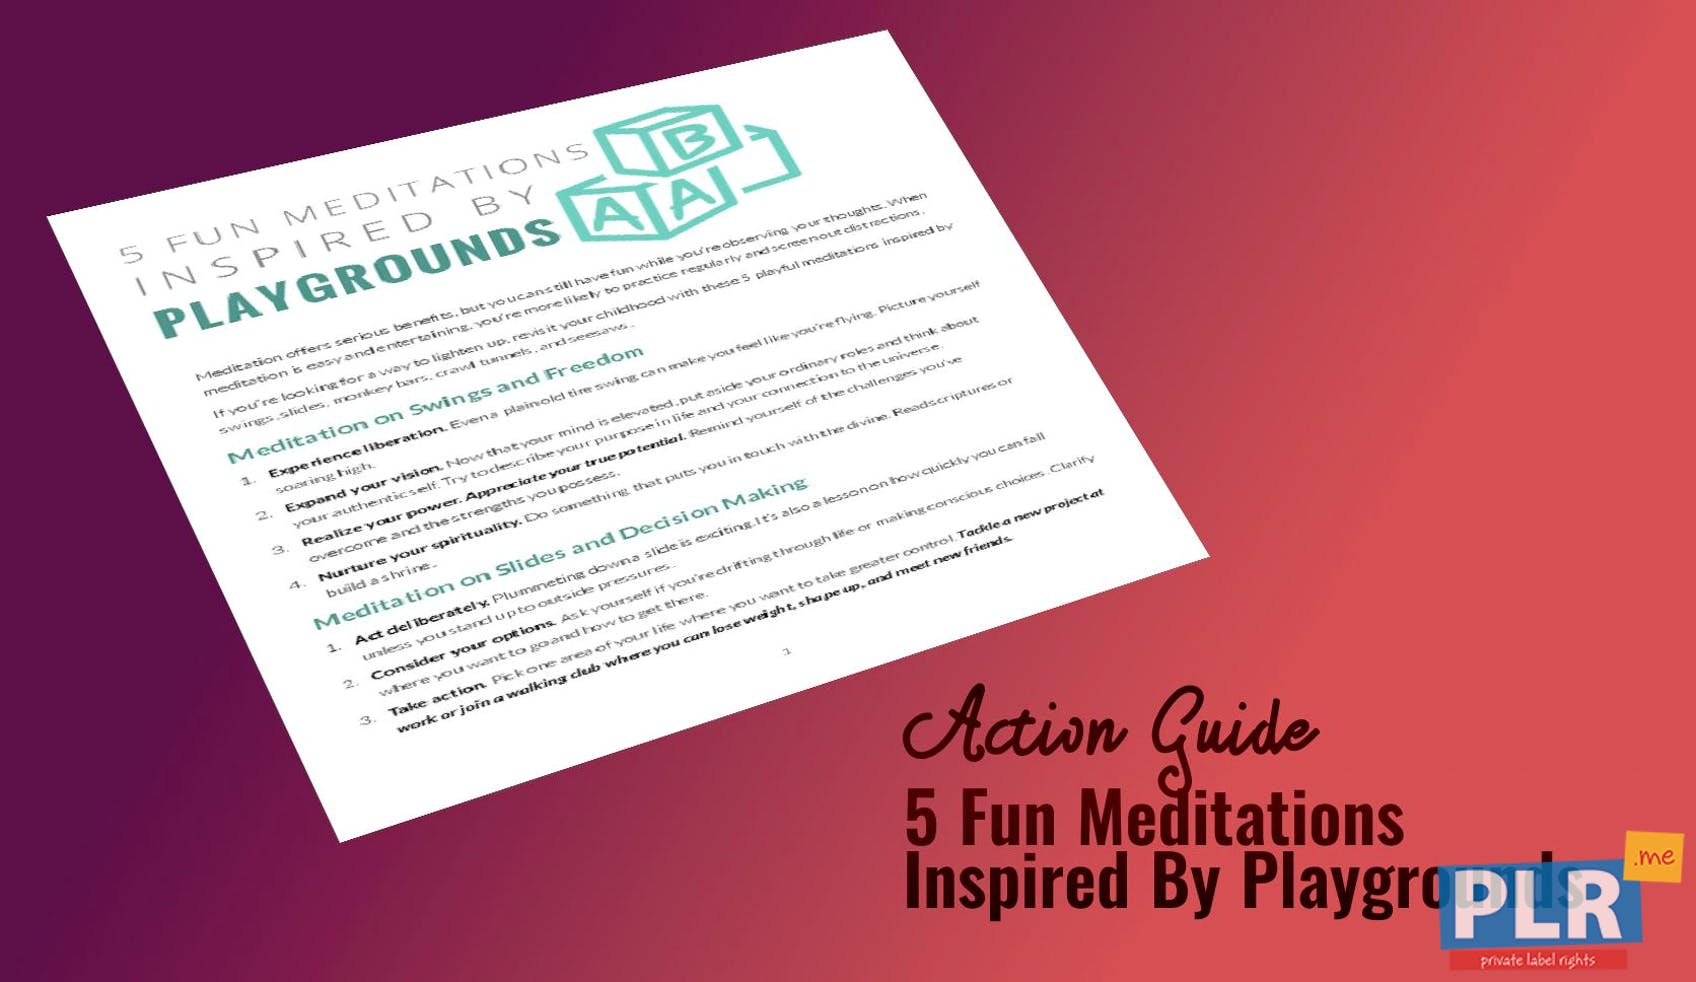 5 Fun Meditations Inspired By Playgrounds